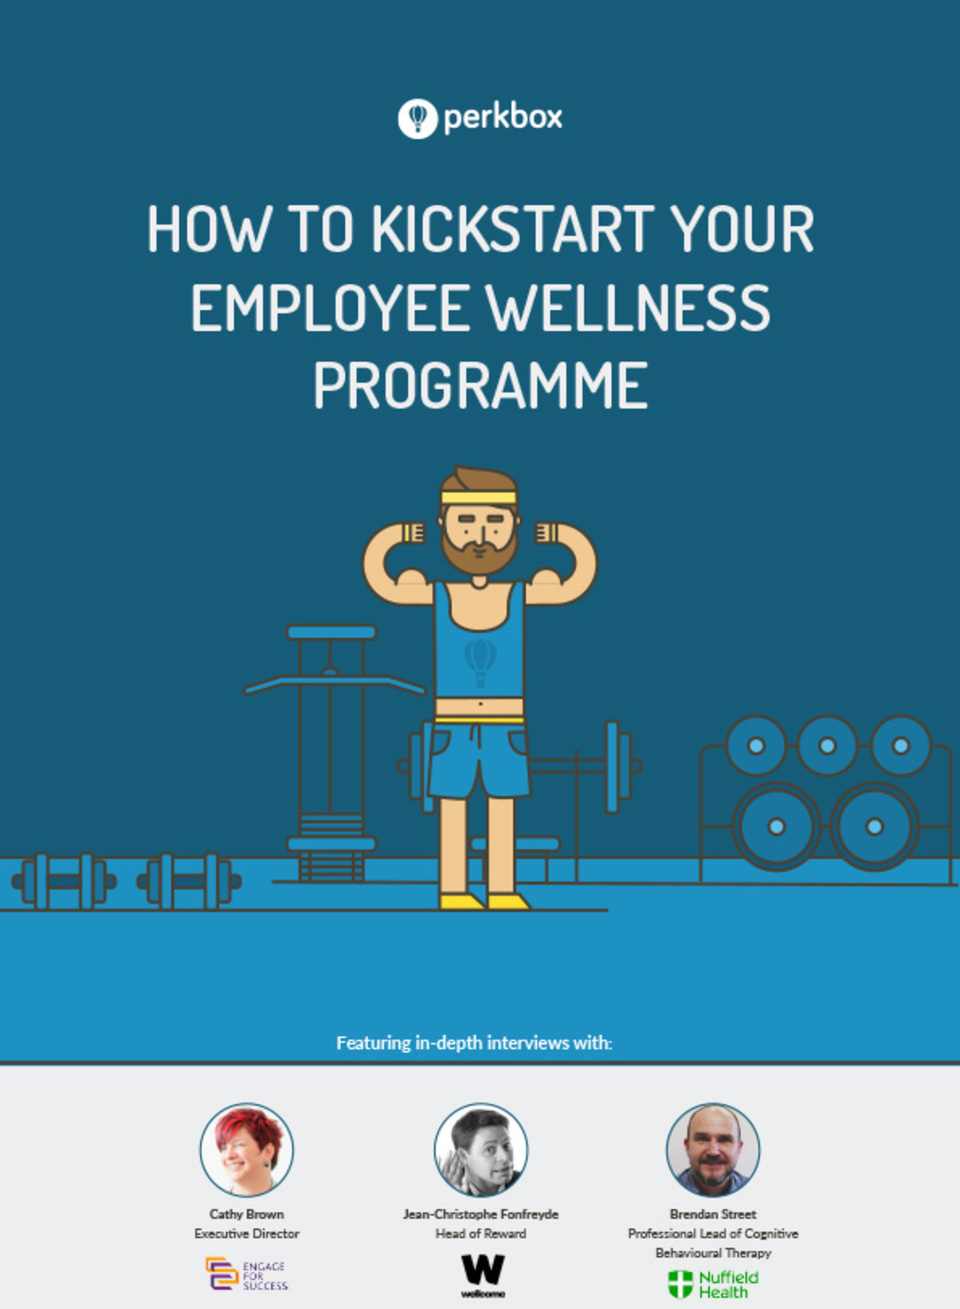 Kickstart your employee wellness programmes